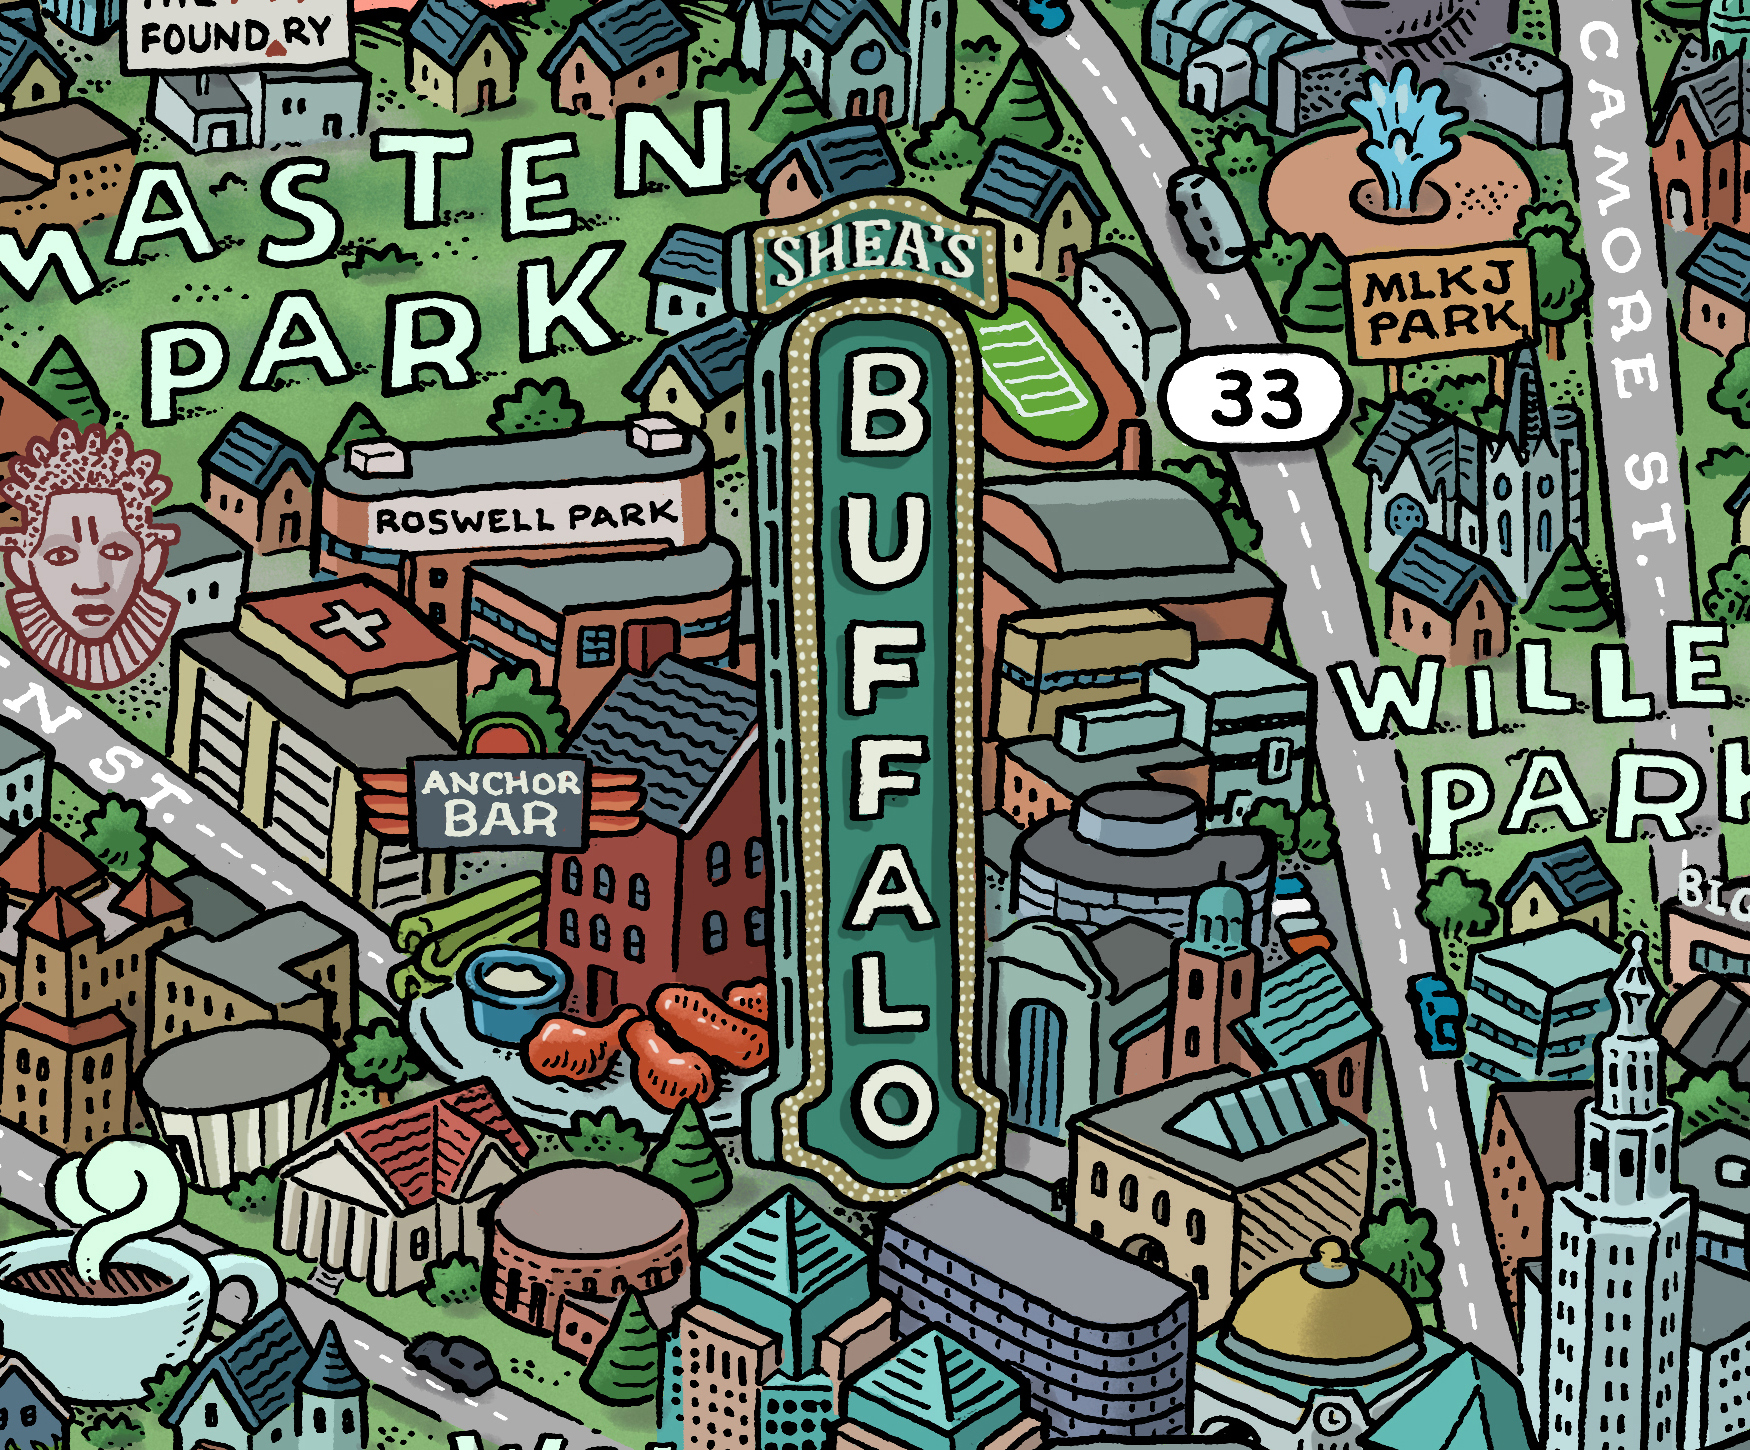 Rust Belt pride shines in new illustrated map of Buffalo ... Illustrated Pittsburgh Map on pittsburgh art map, pittsburgh black map, pittsburgh simple map, pittsburgh interactive map, pittsburgh aviation map, pittsburgh illustration, pittsburgh history, pittsburgh photography,